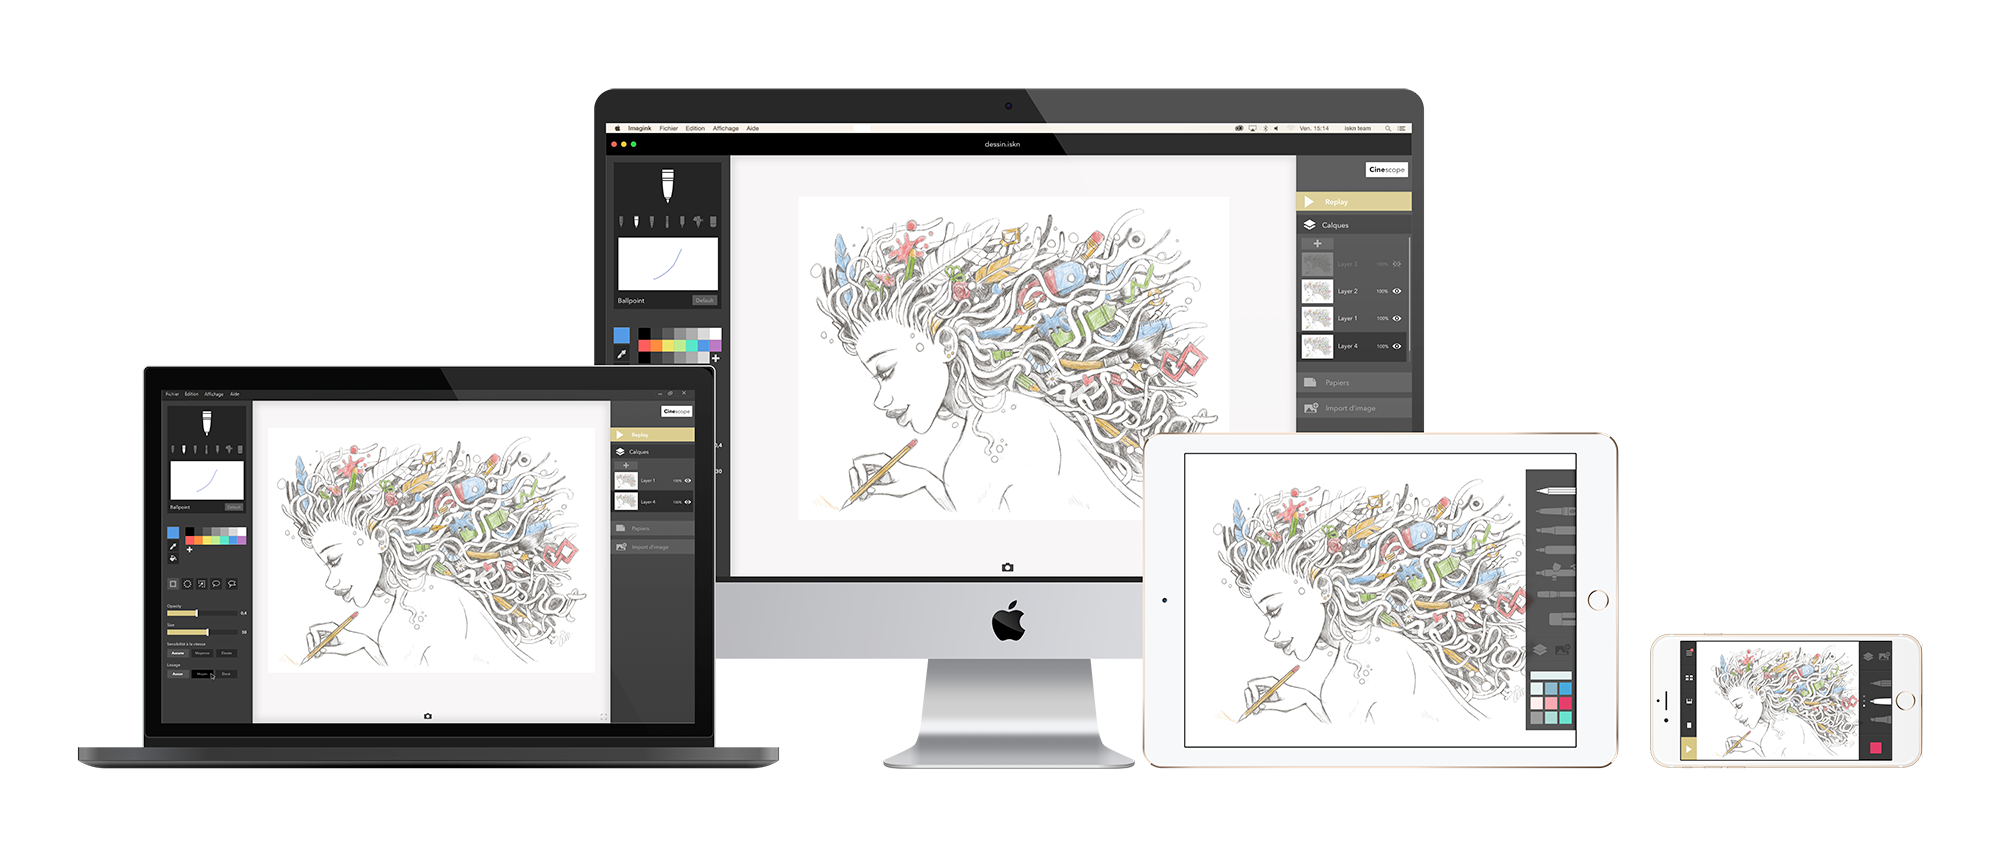 Desktop drawing imac. You can now use